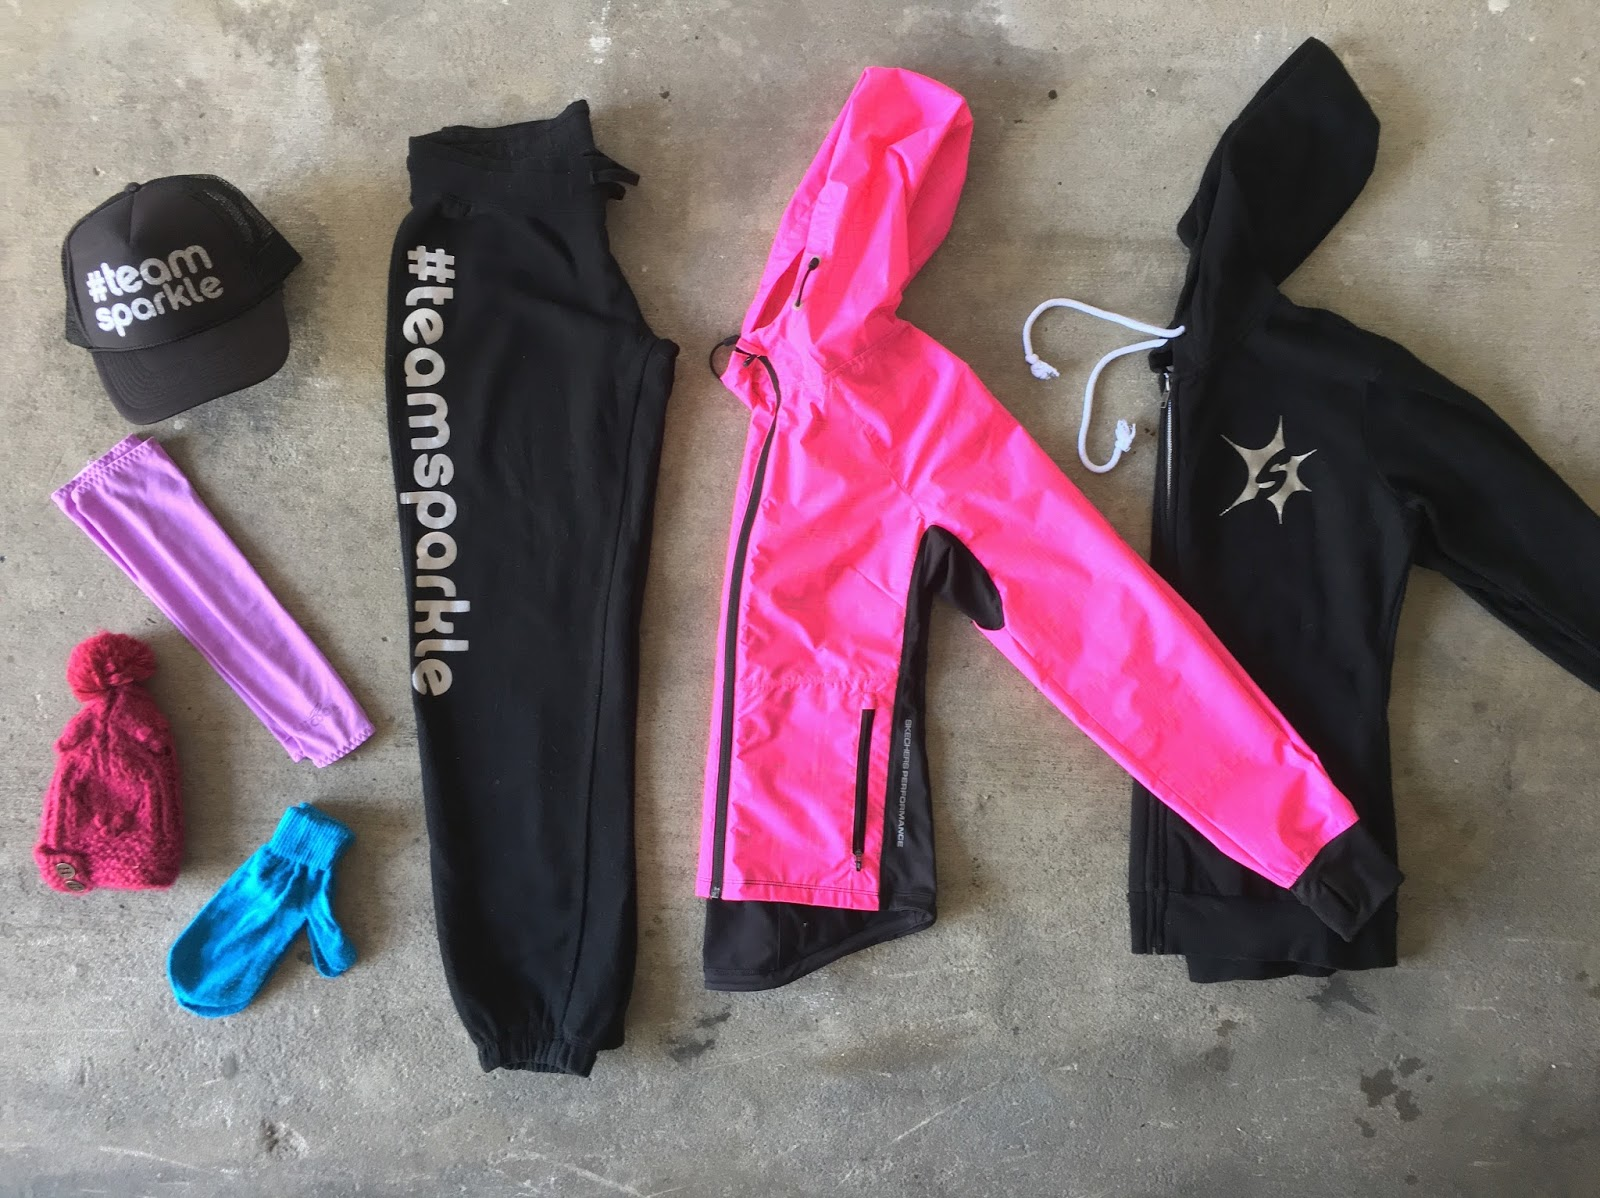 Activewear Clothing, Shoes & Accessories Pink Sweatsuit Utmost In Convenience